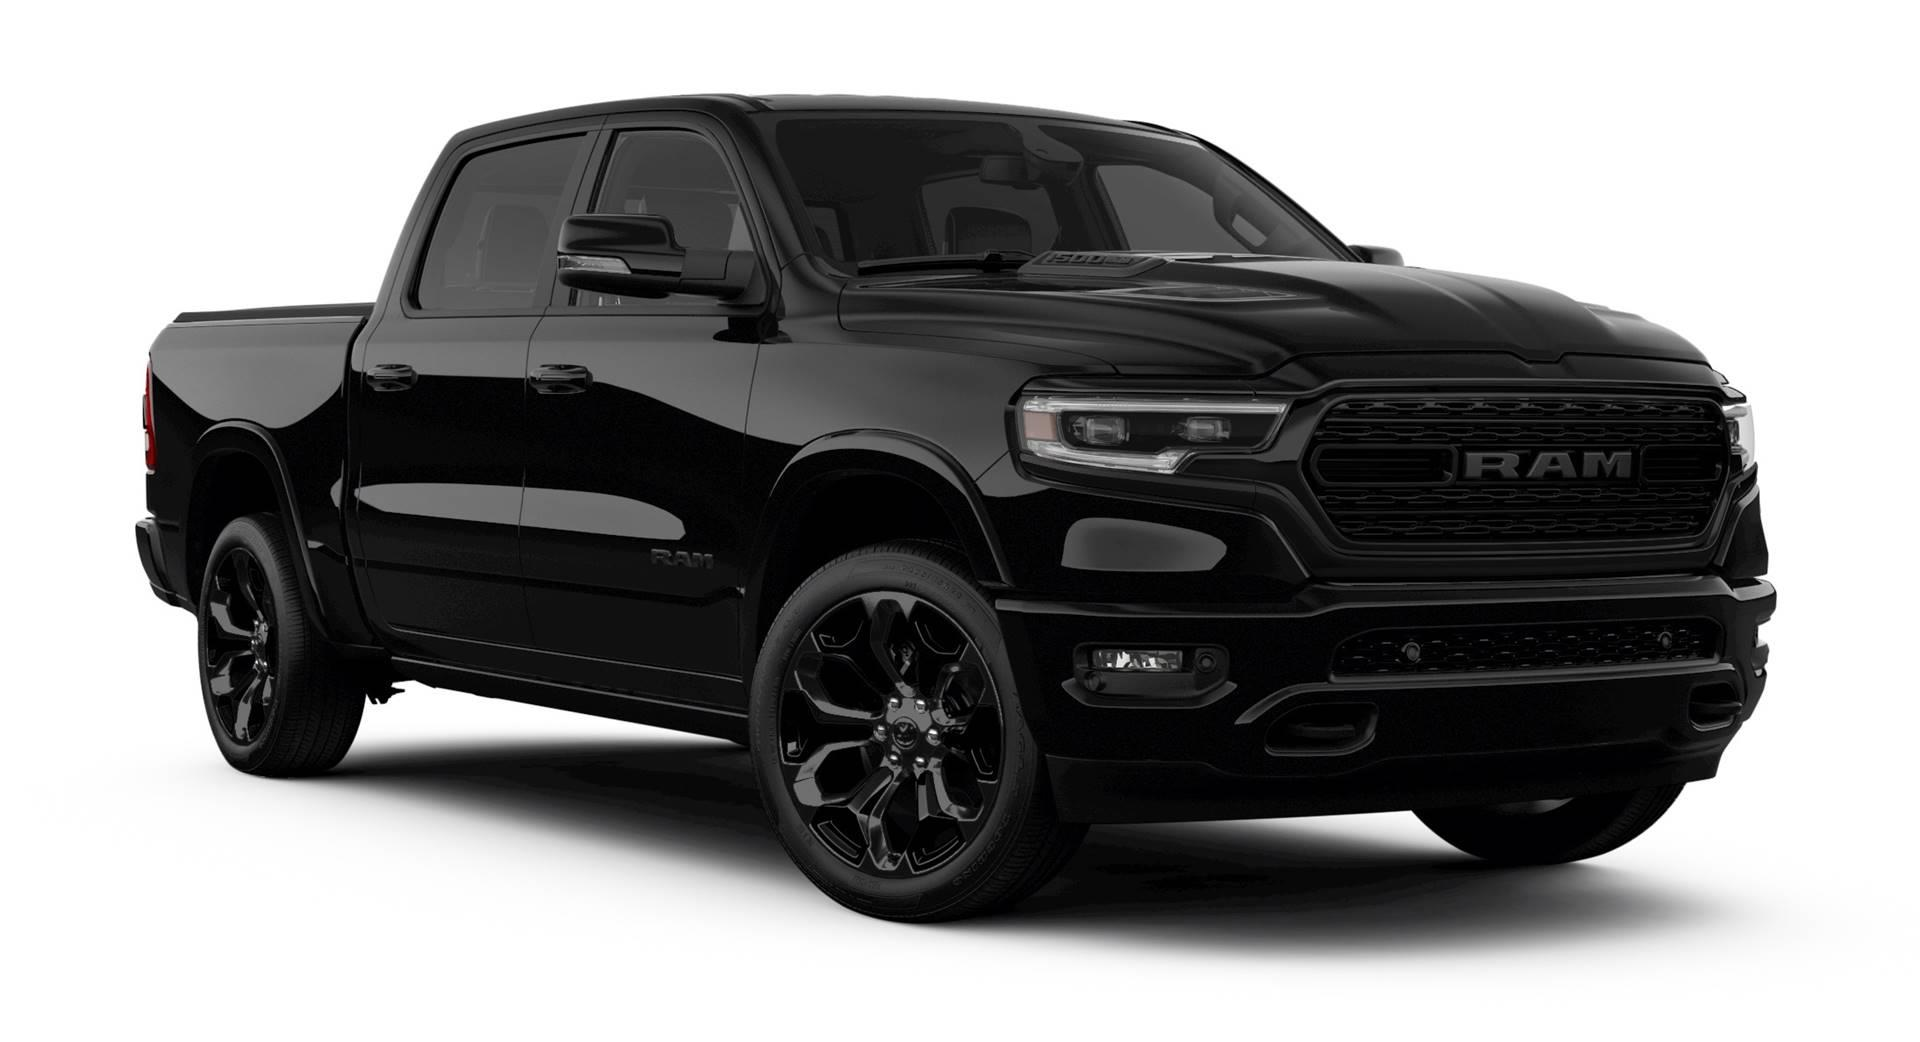 2019 Ram 1500 Limited Black Edition News And Information